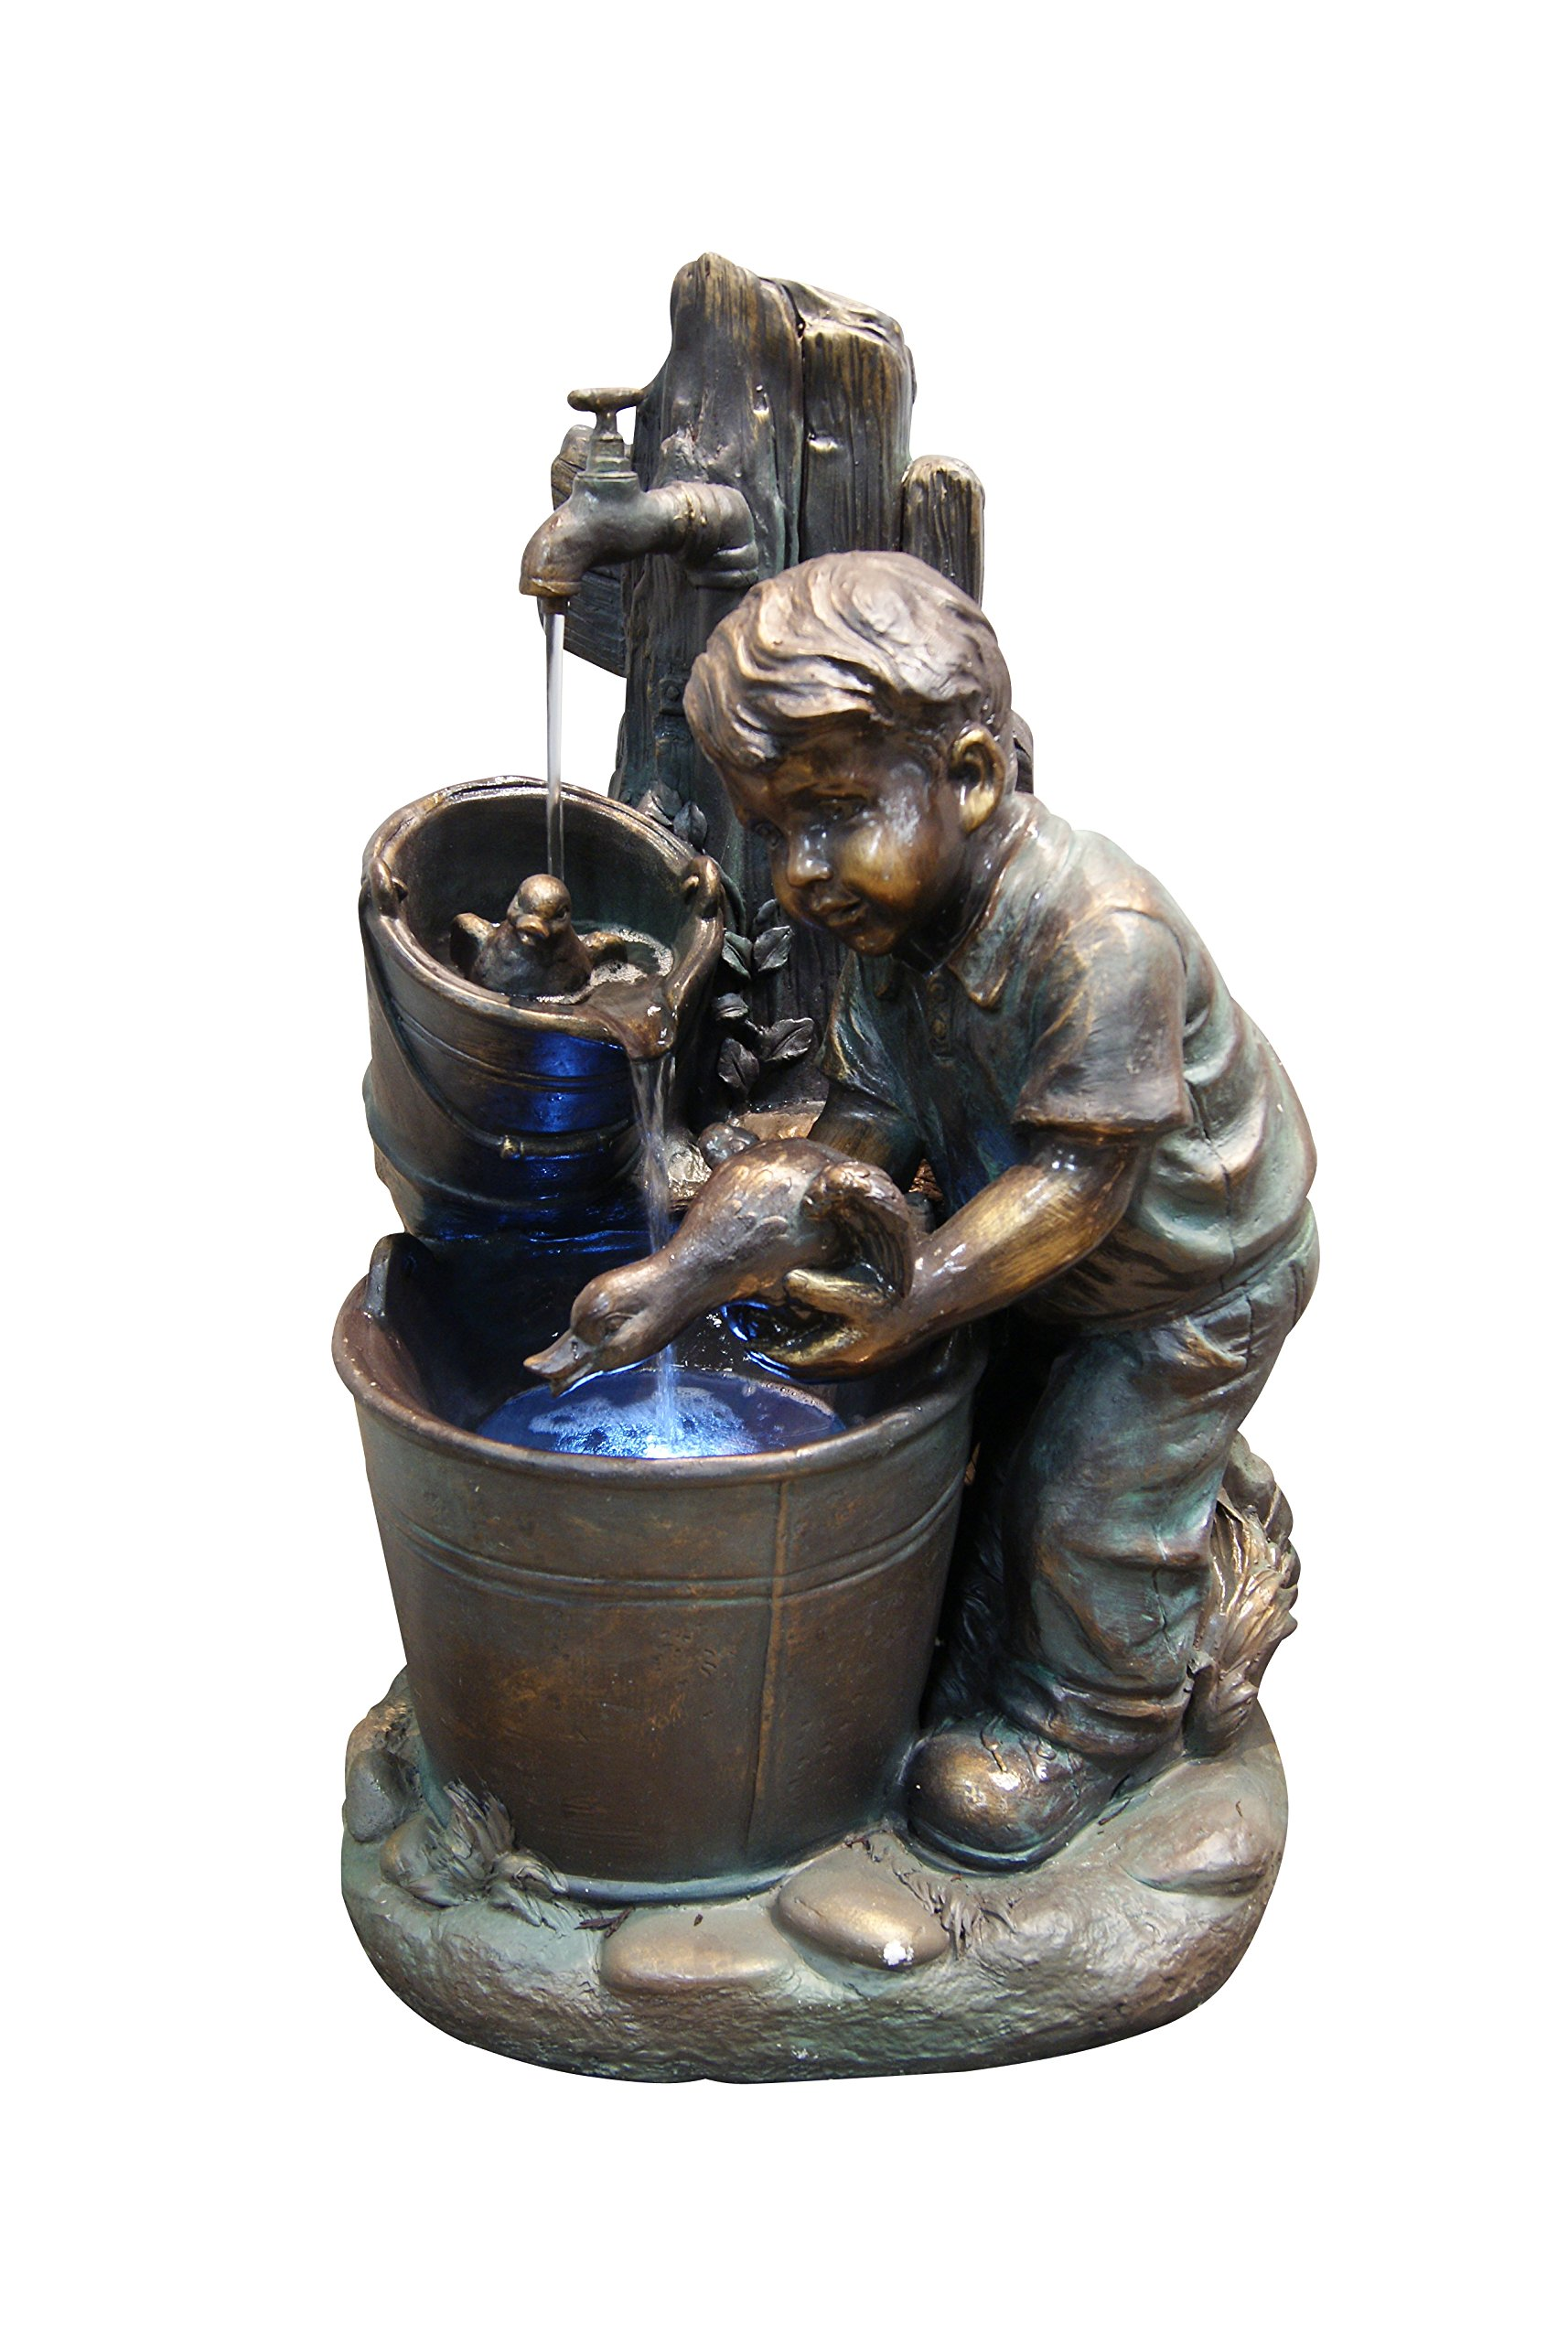 Alpine GXT476 Boy Washing Duck in Bucket Fountain with LED Light